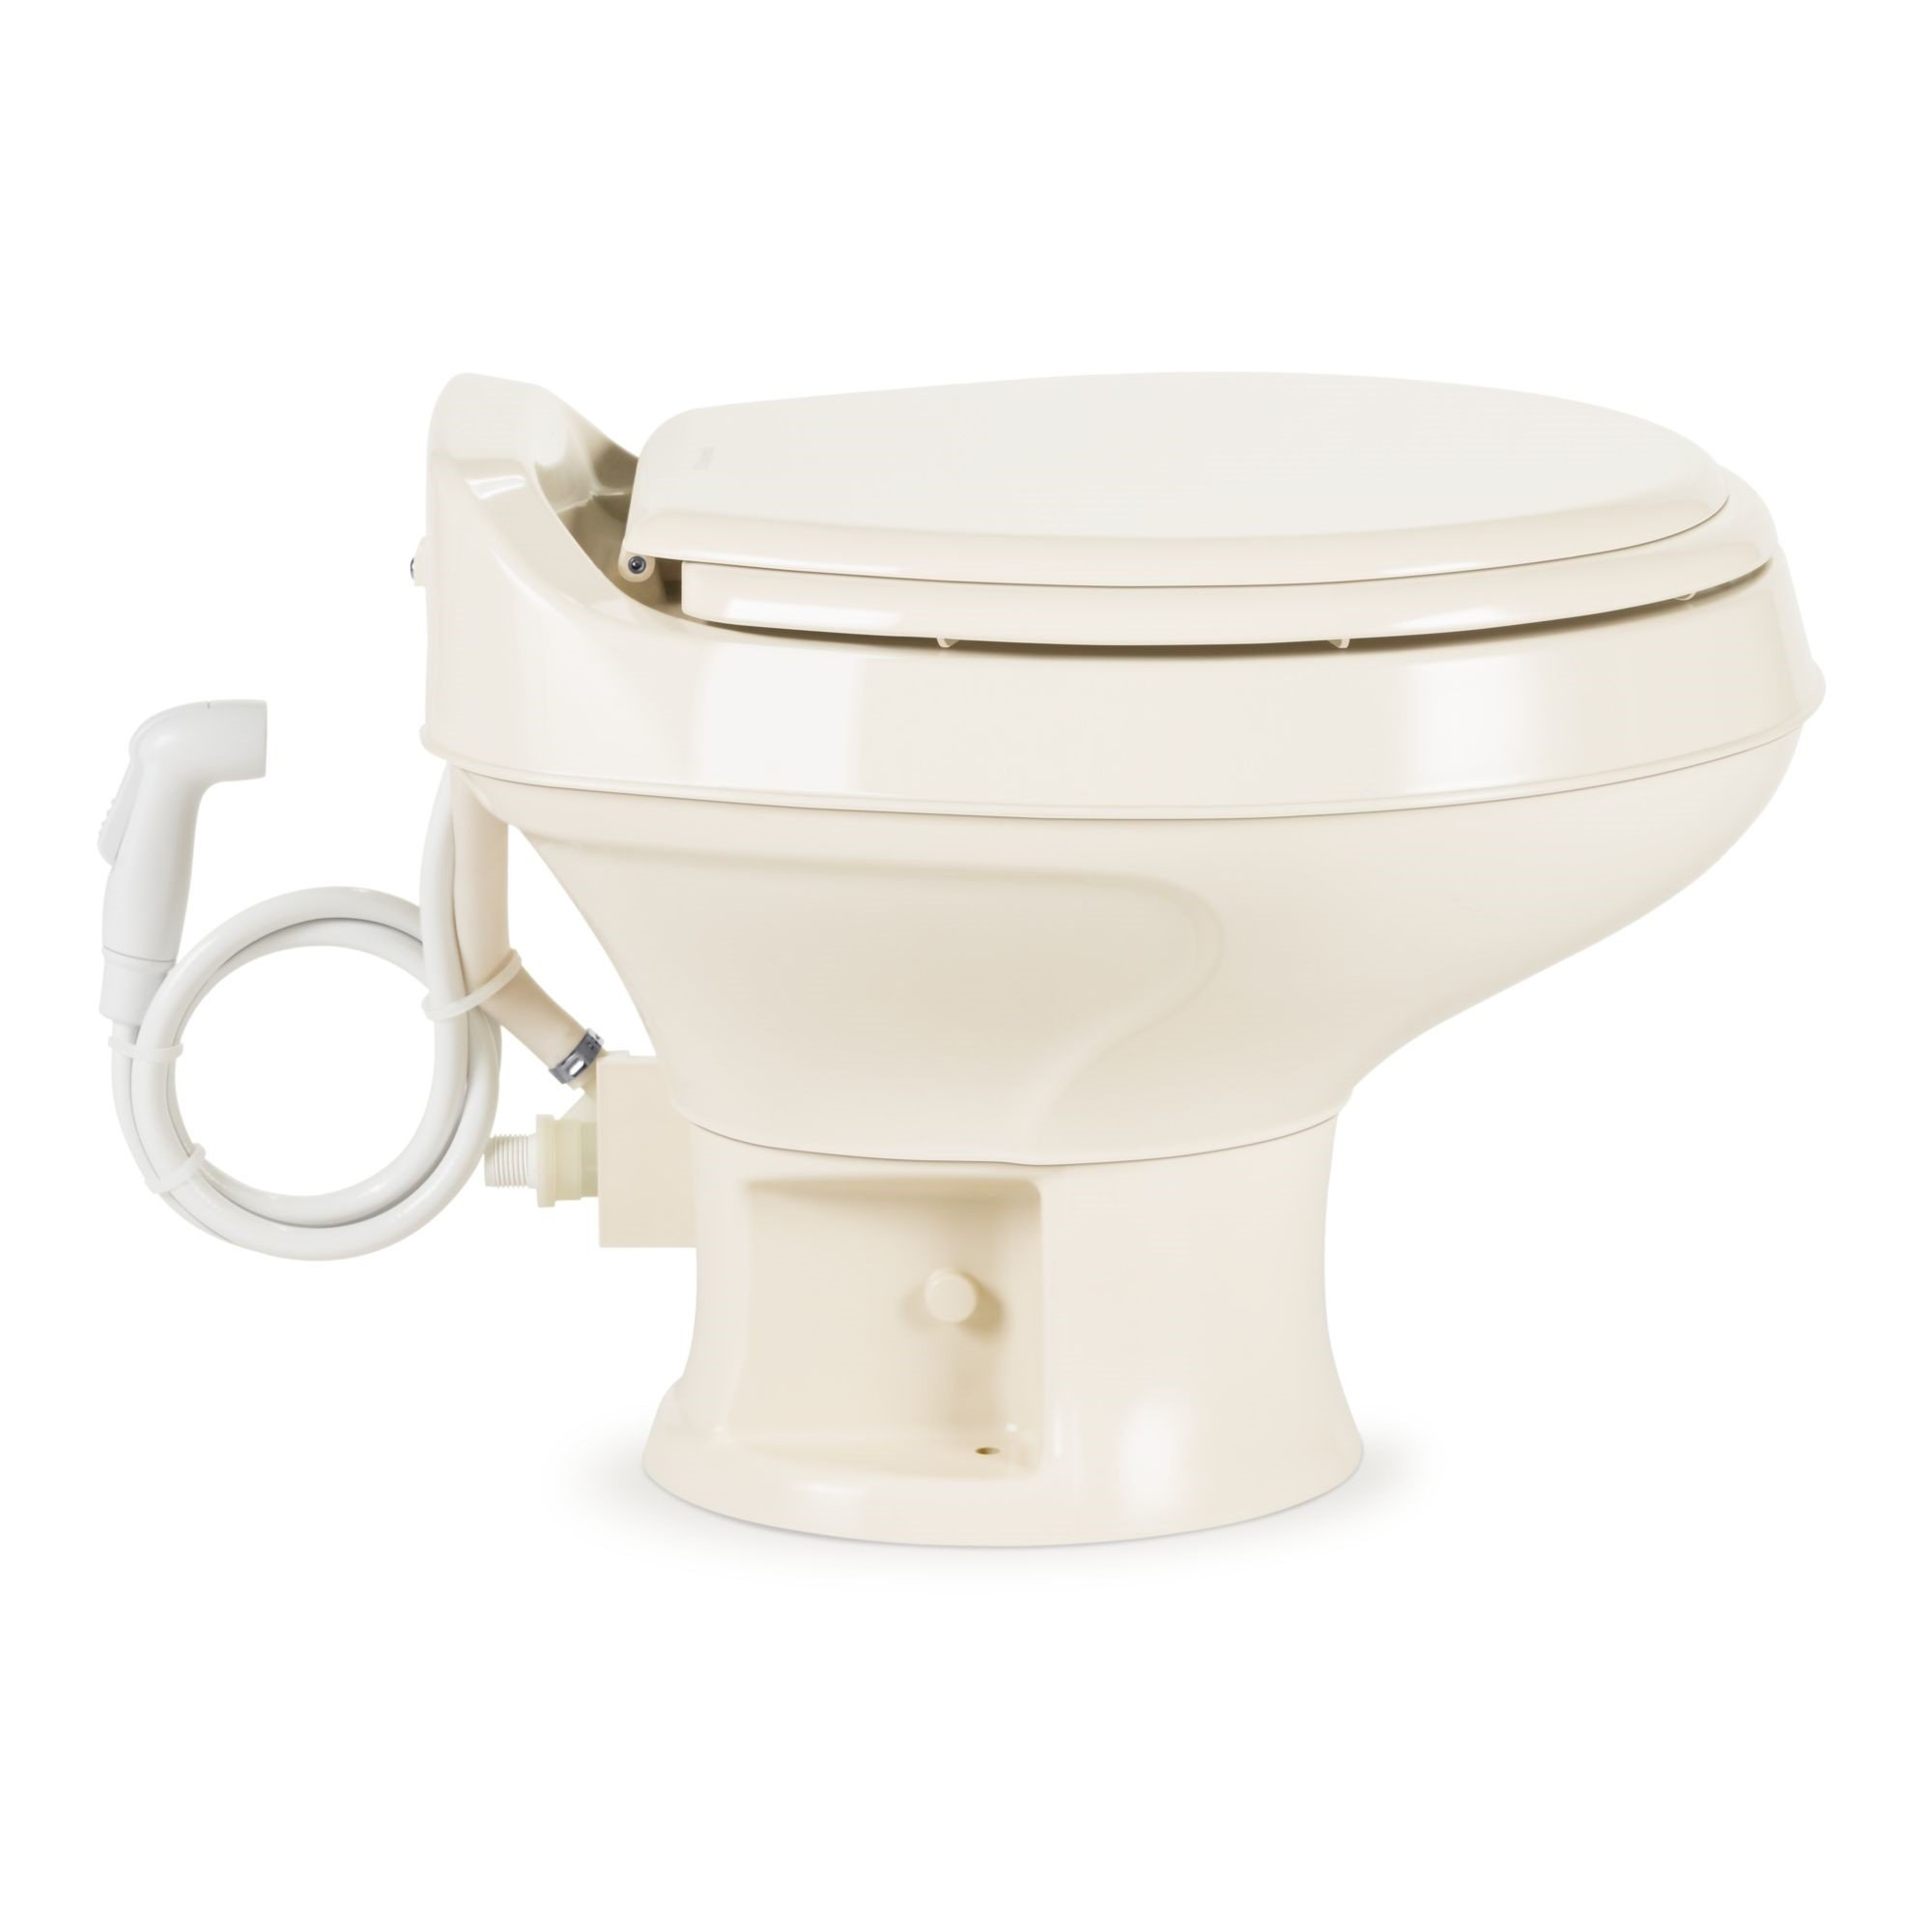 Dometic 300 Series Low Profile Toilet w/ Hand Spray, Bone by Dometic (Image #2)